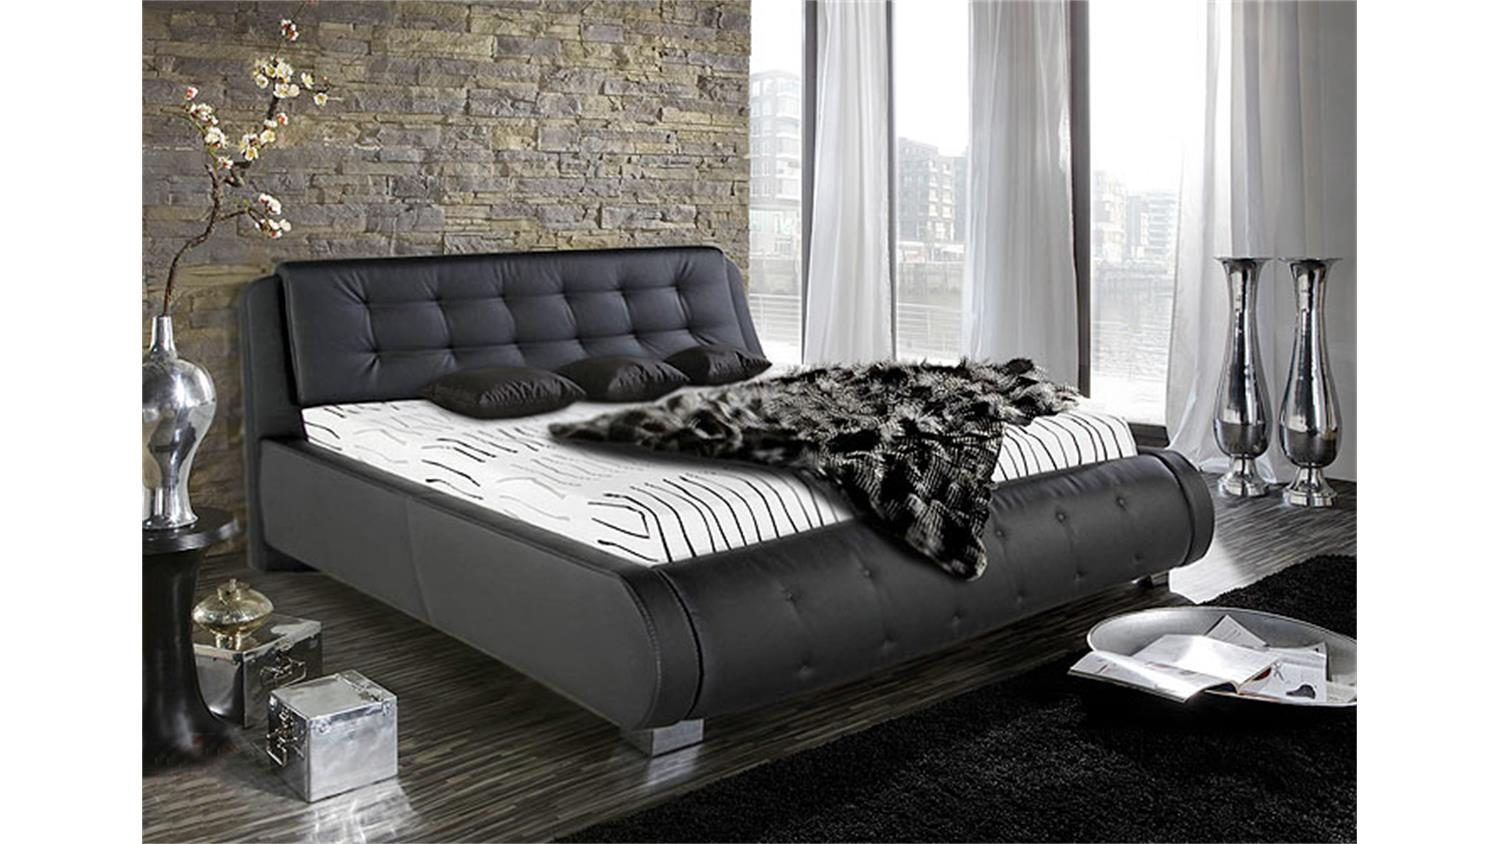 polsterbett nelio schlafzimmer bett in schwarz 180x200 cm. Black Bedroom Furniture Sets. Home Design Ideas